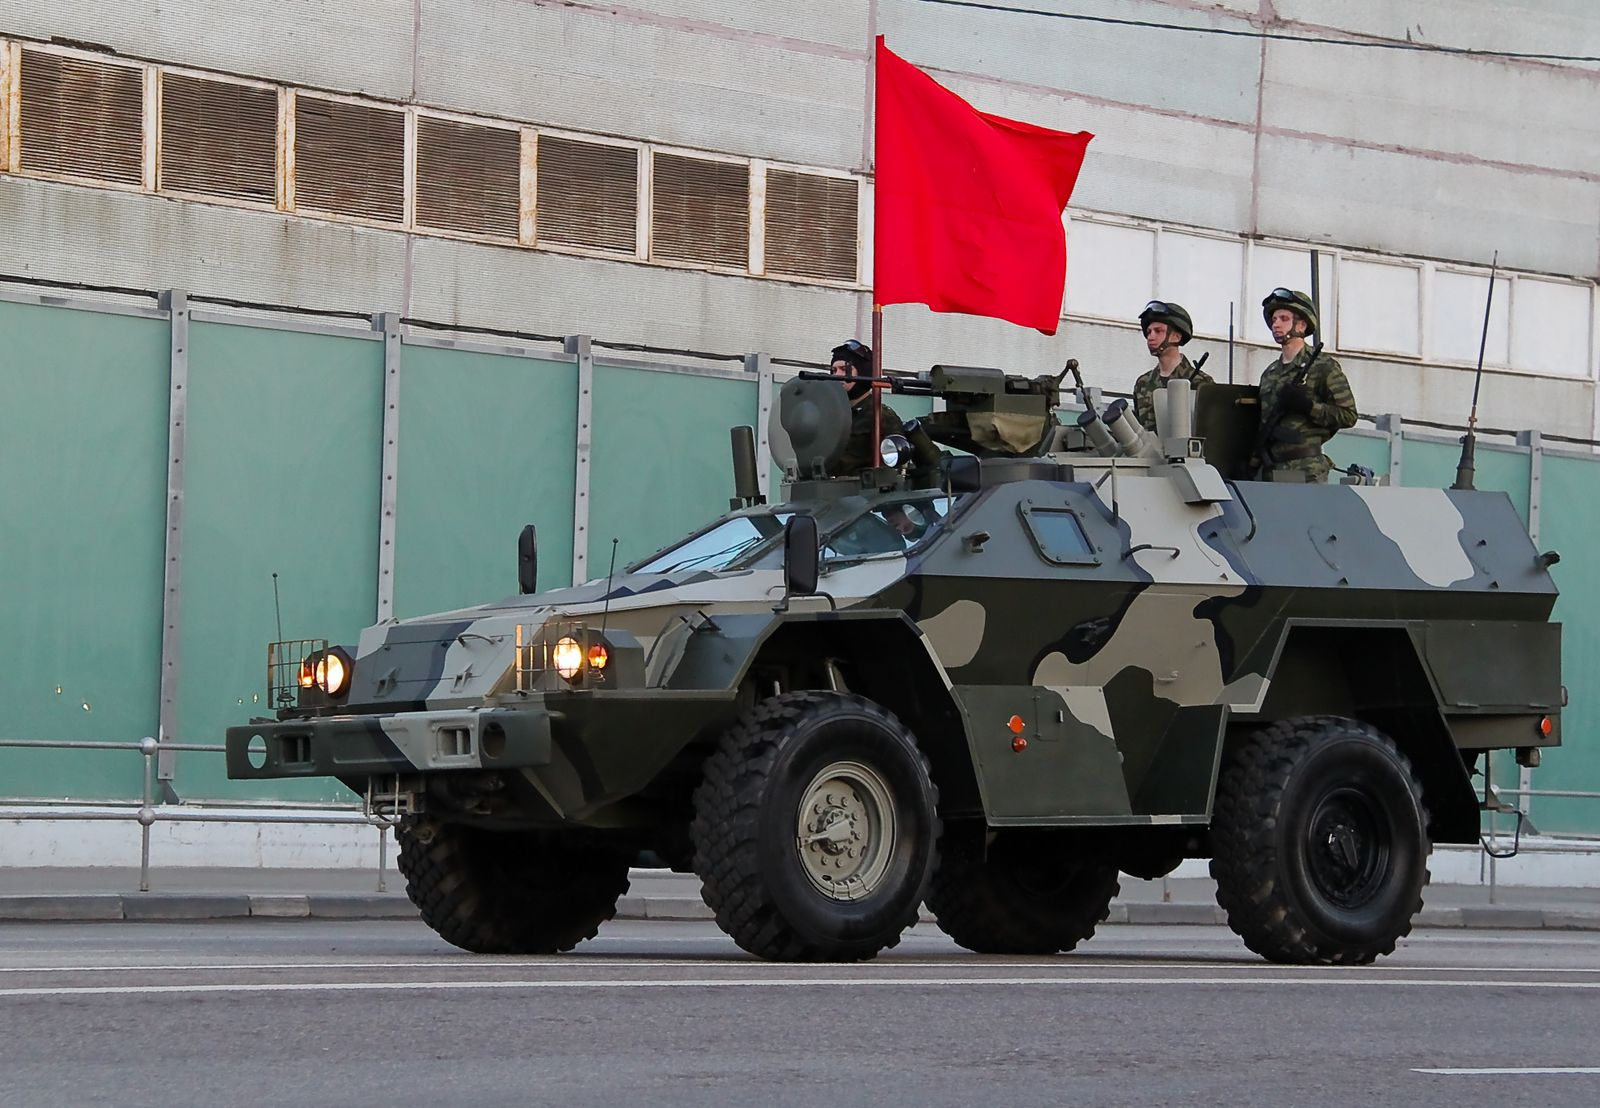 http://upload.wikimedia.org/wikipedia/commons/b/b2/Russian_BPM-97_APC.jpg?uselang=ru